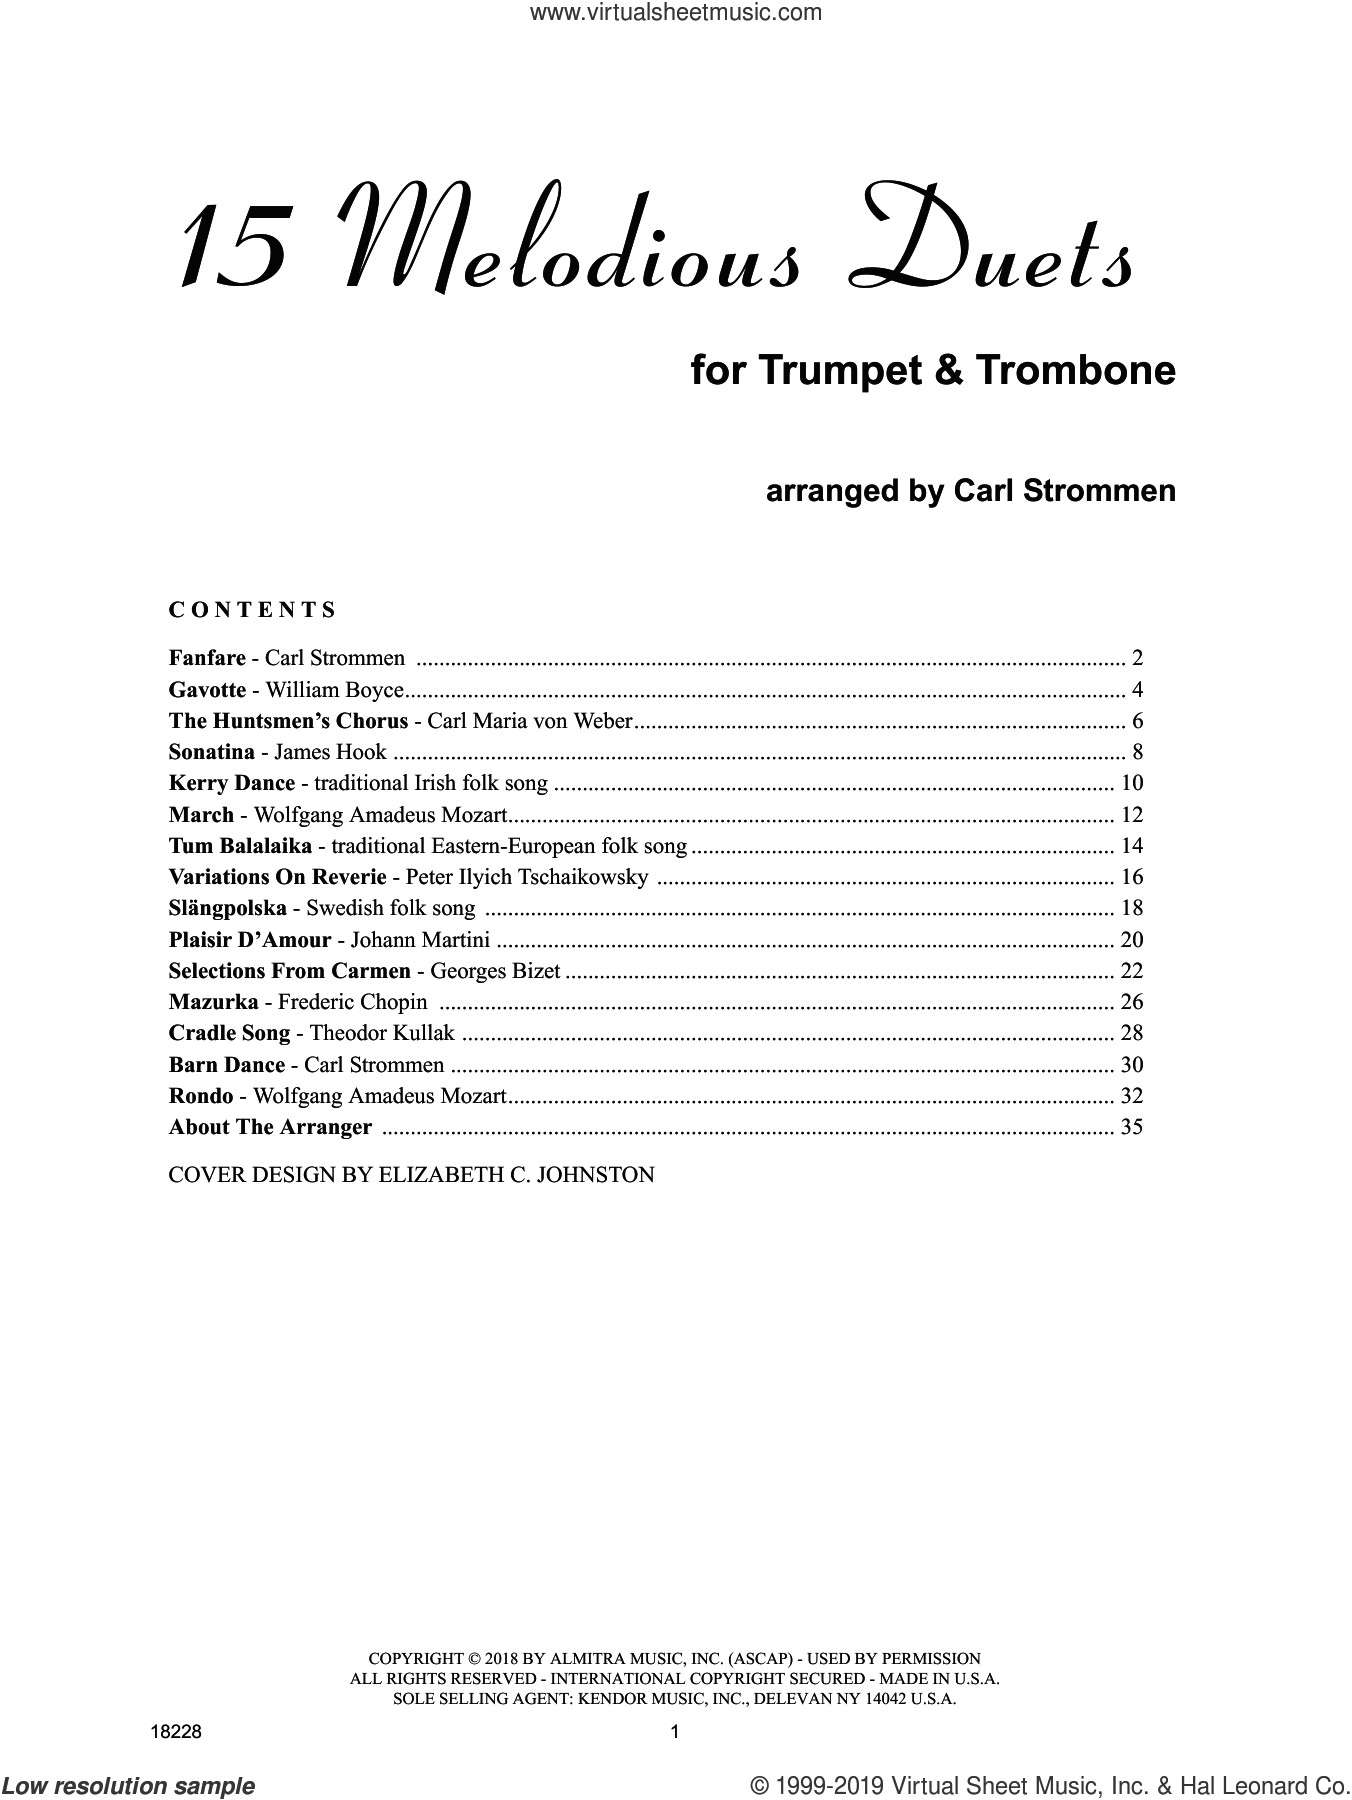 15 Melodious Duets sheet music for trumpet and trombone by Carl Strommen, intermediate duet